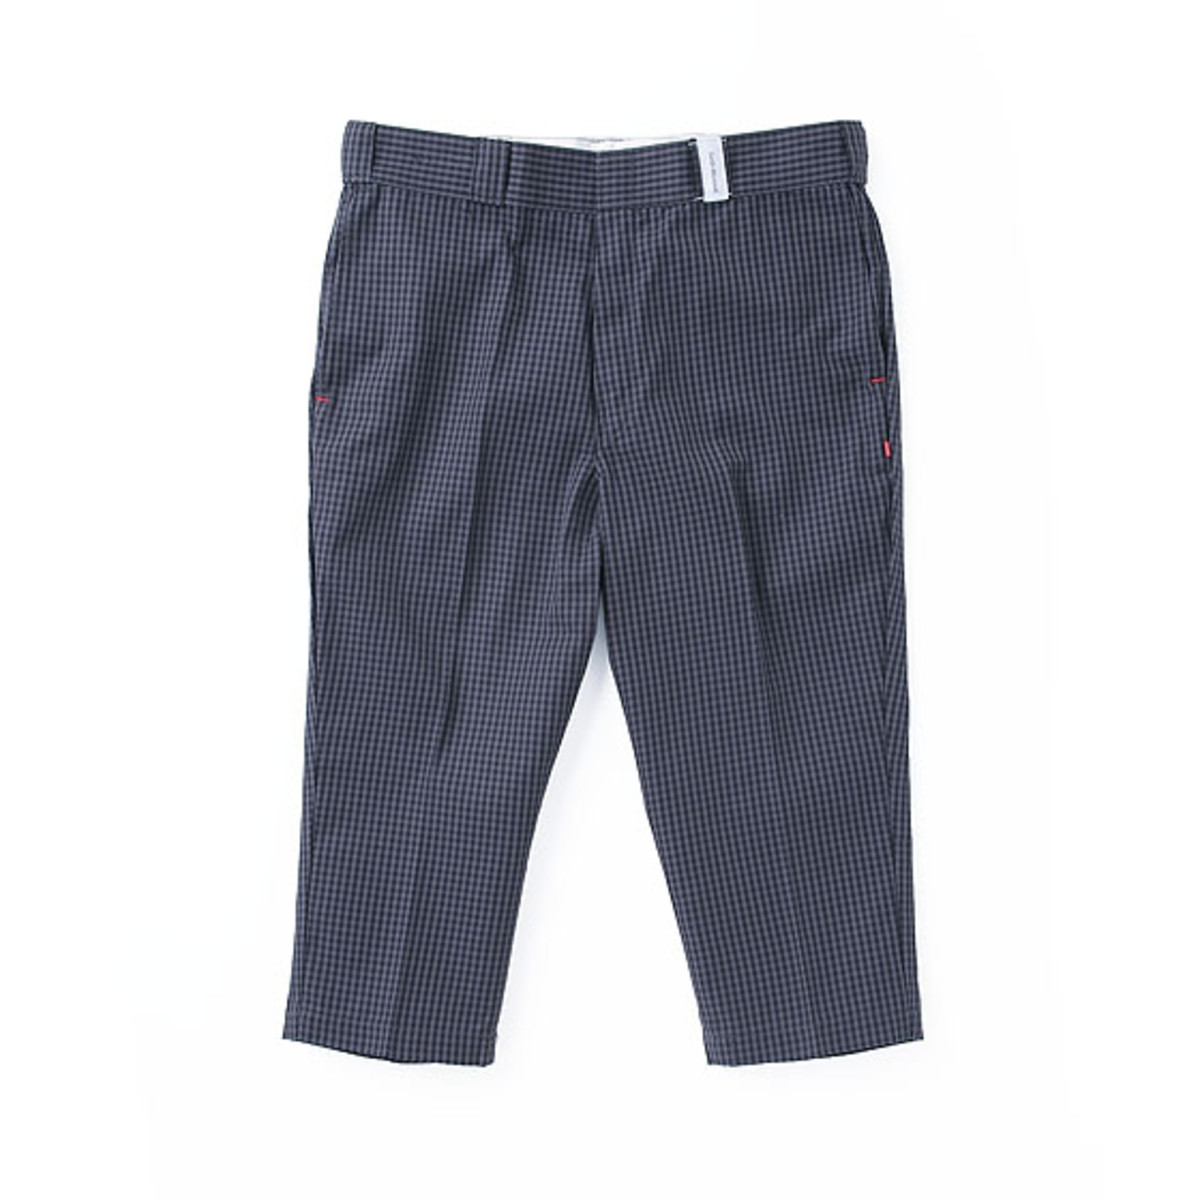 Tripster Shorts